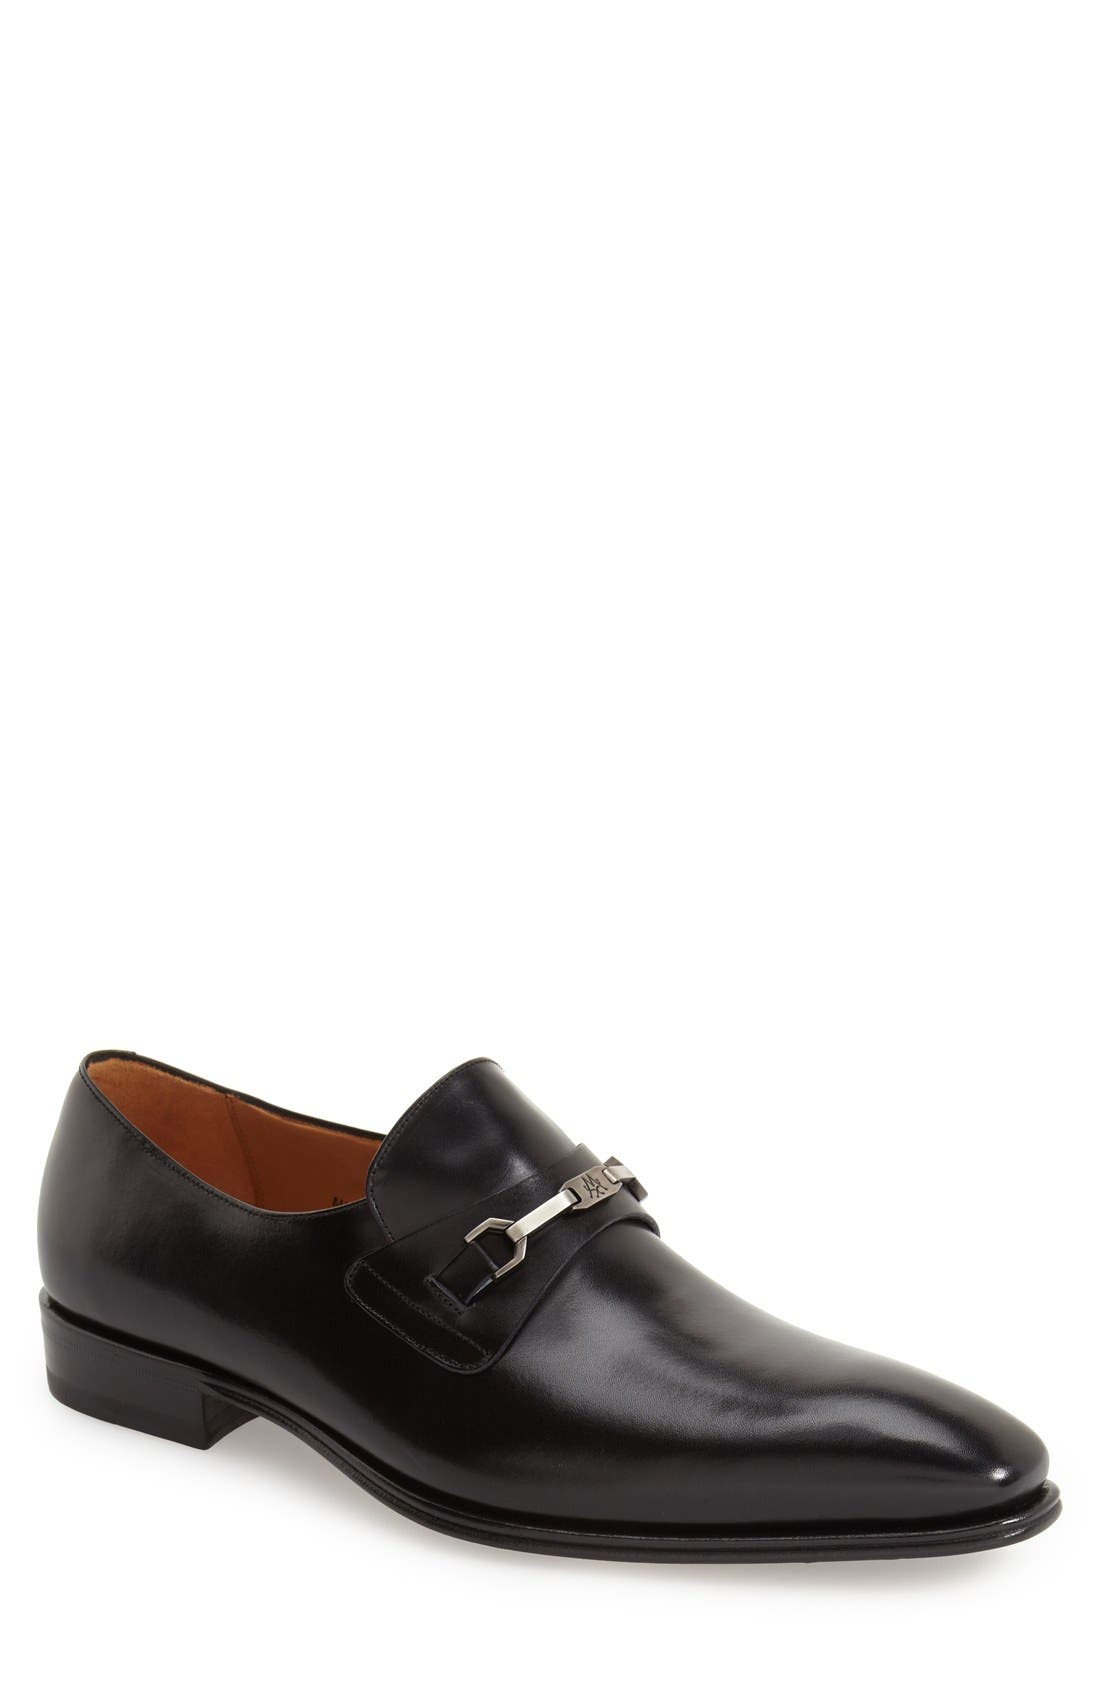 'Doria' Venetian Loafer,                         Main,                         color, 001